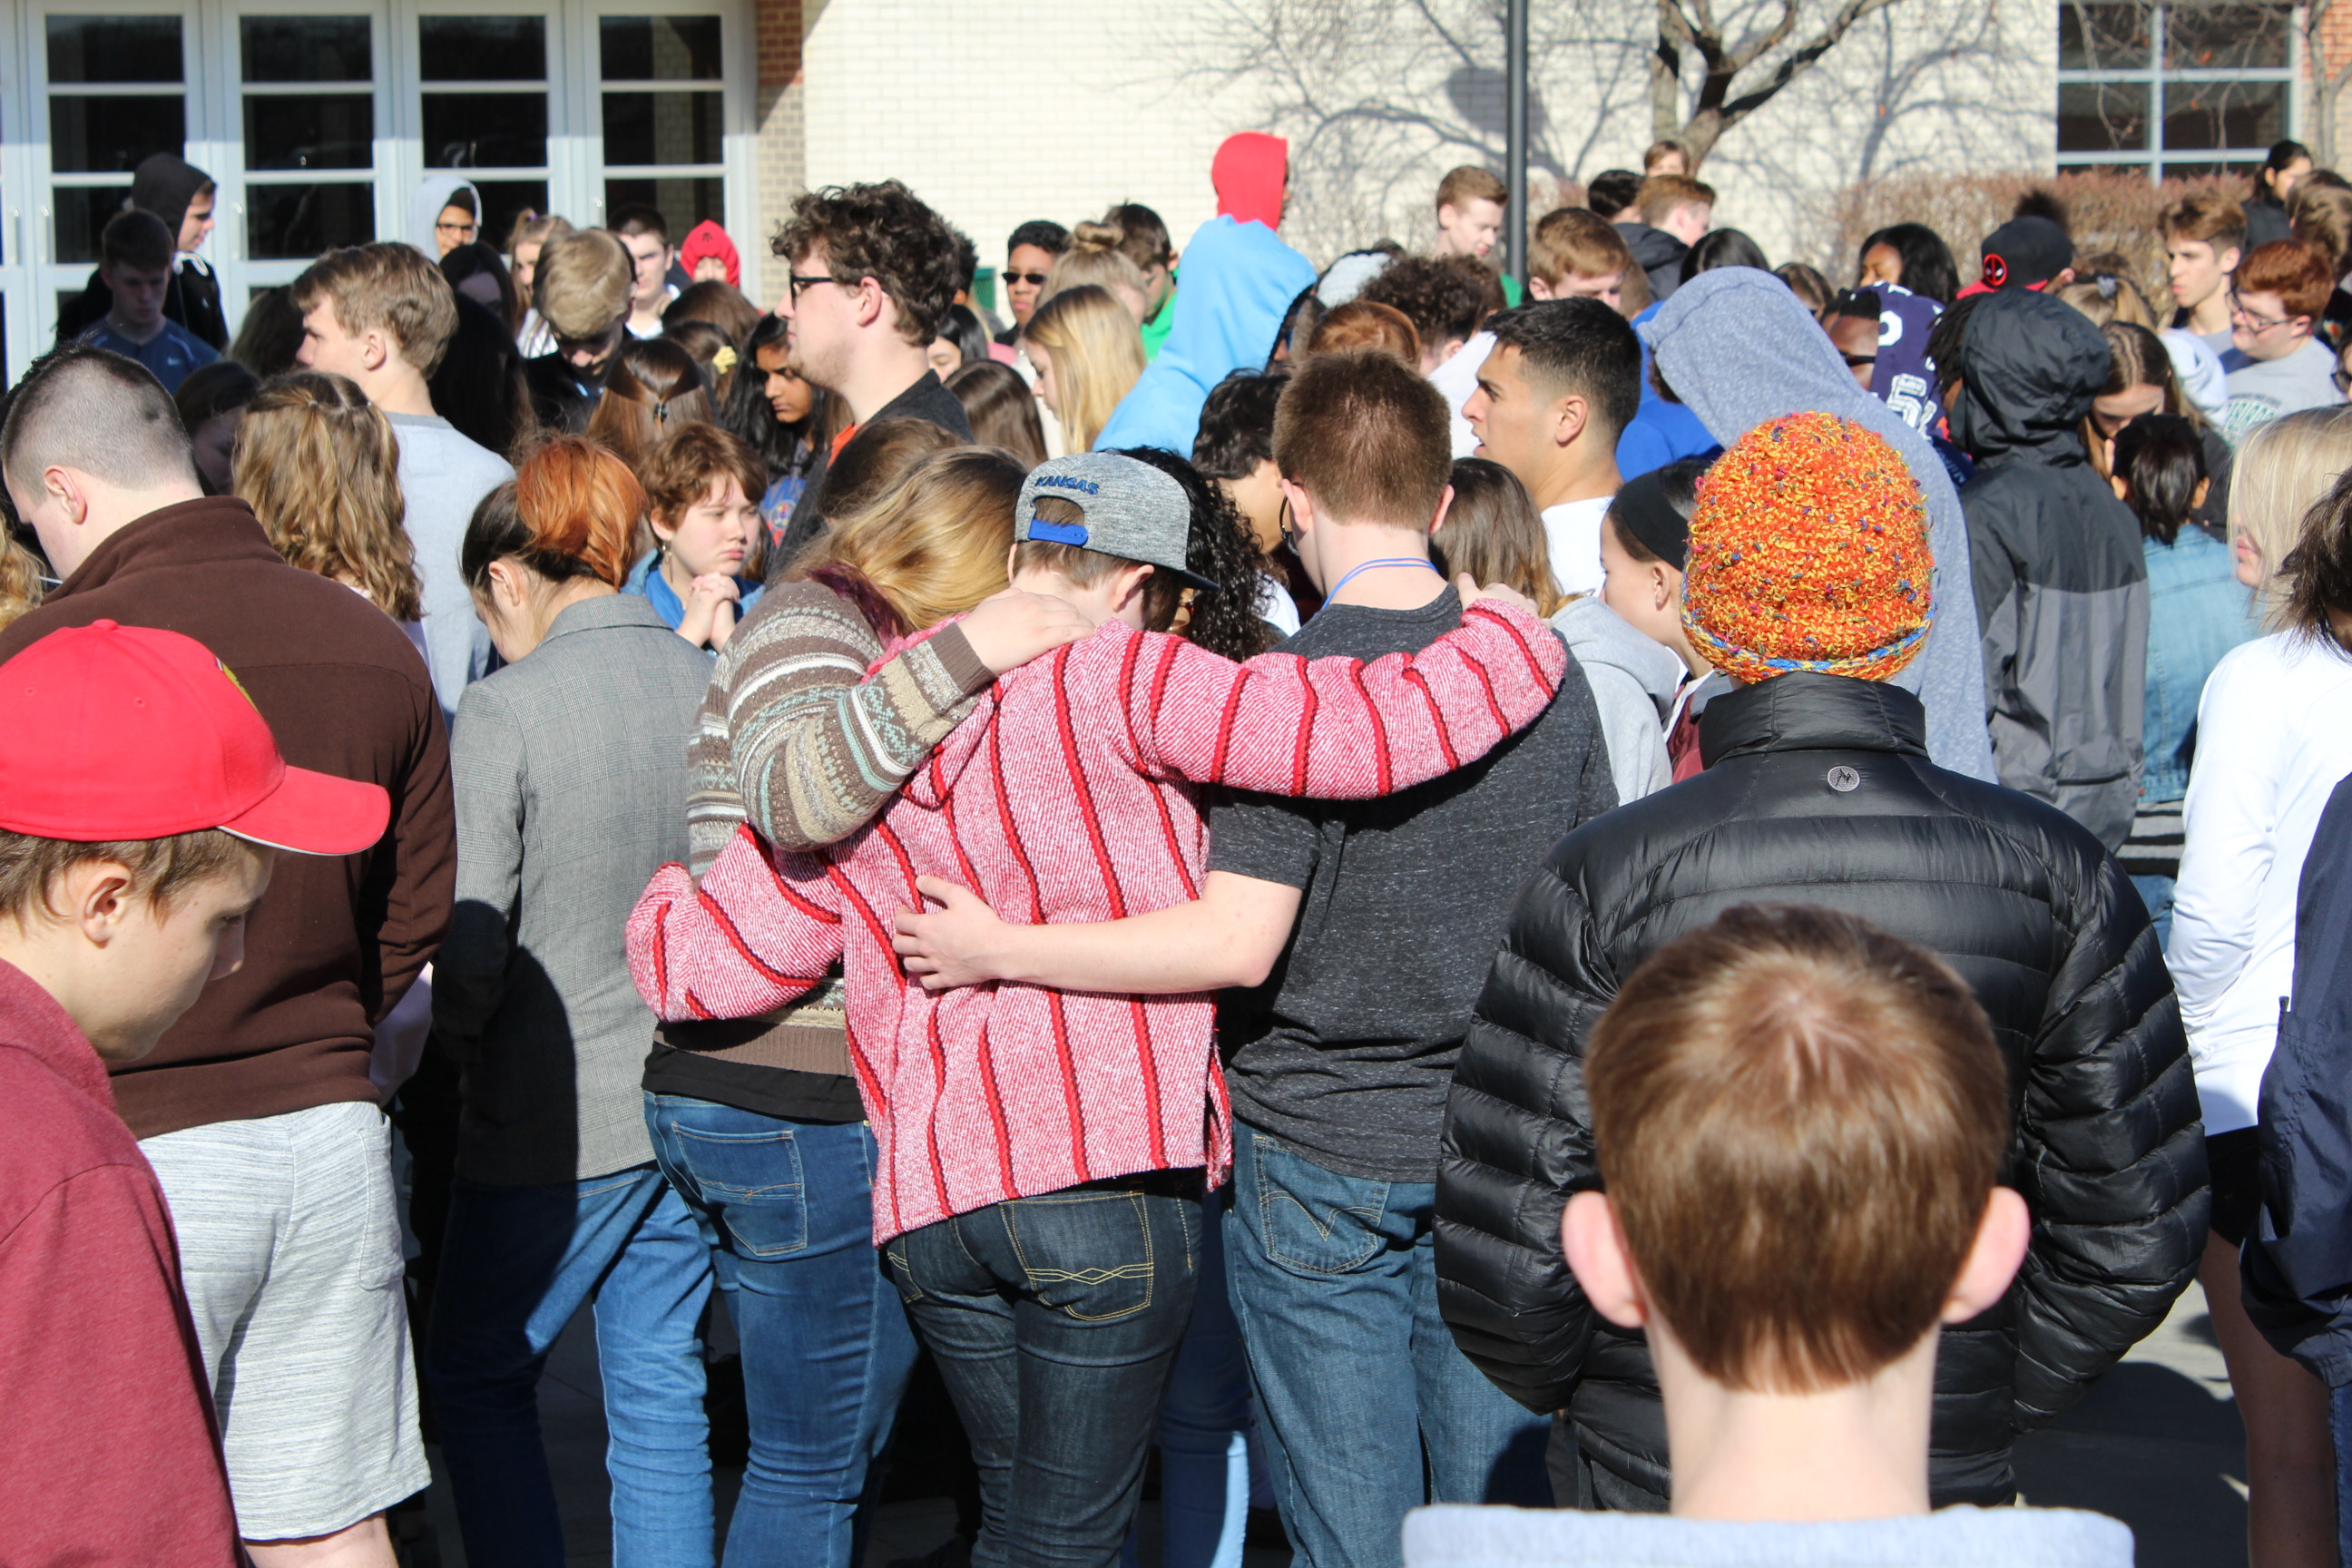 Several students embrace during the 17 minutes of silence observed at Lawrence's Free State High School. (Photo by J. Schafer)